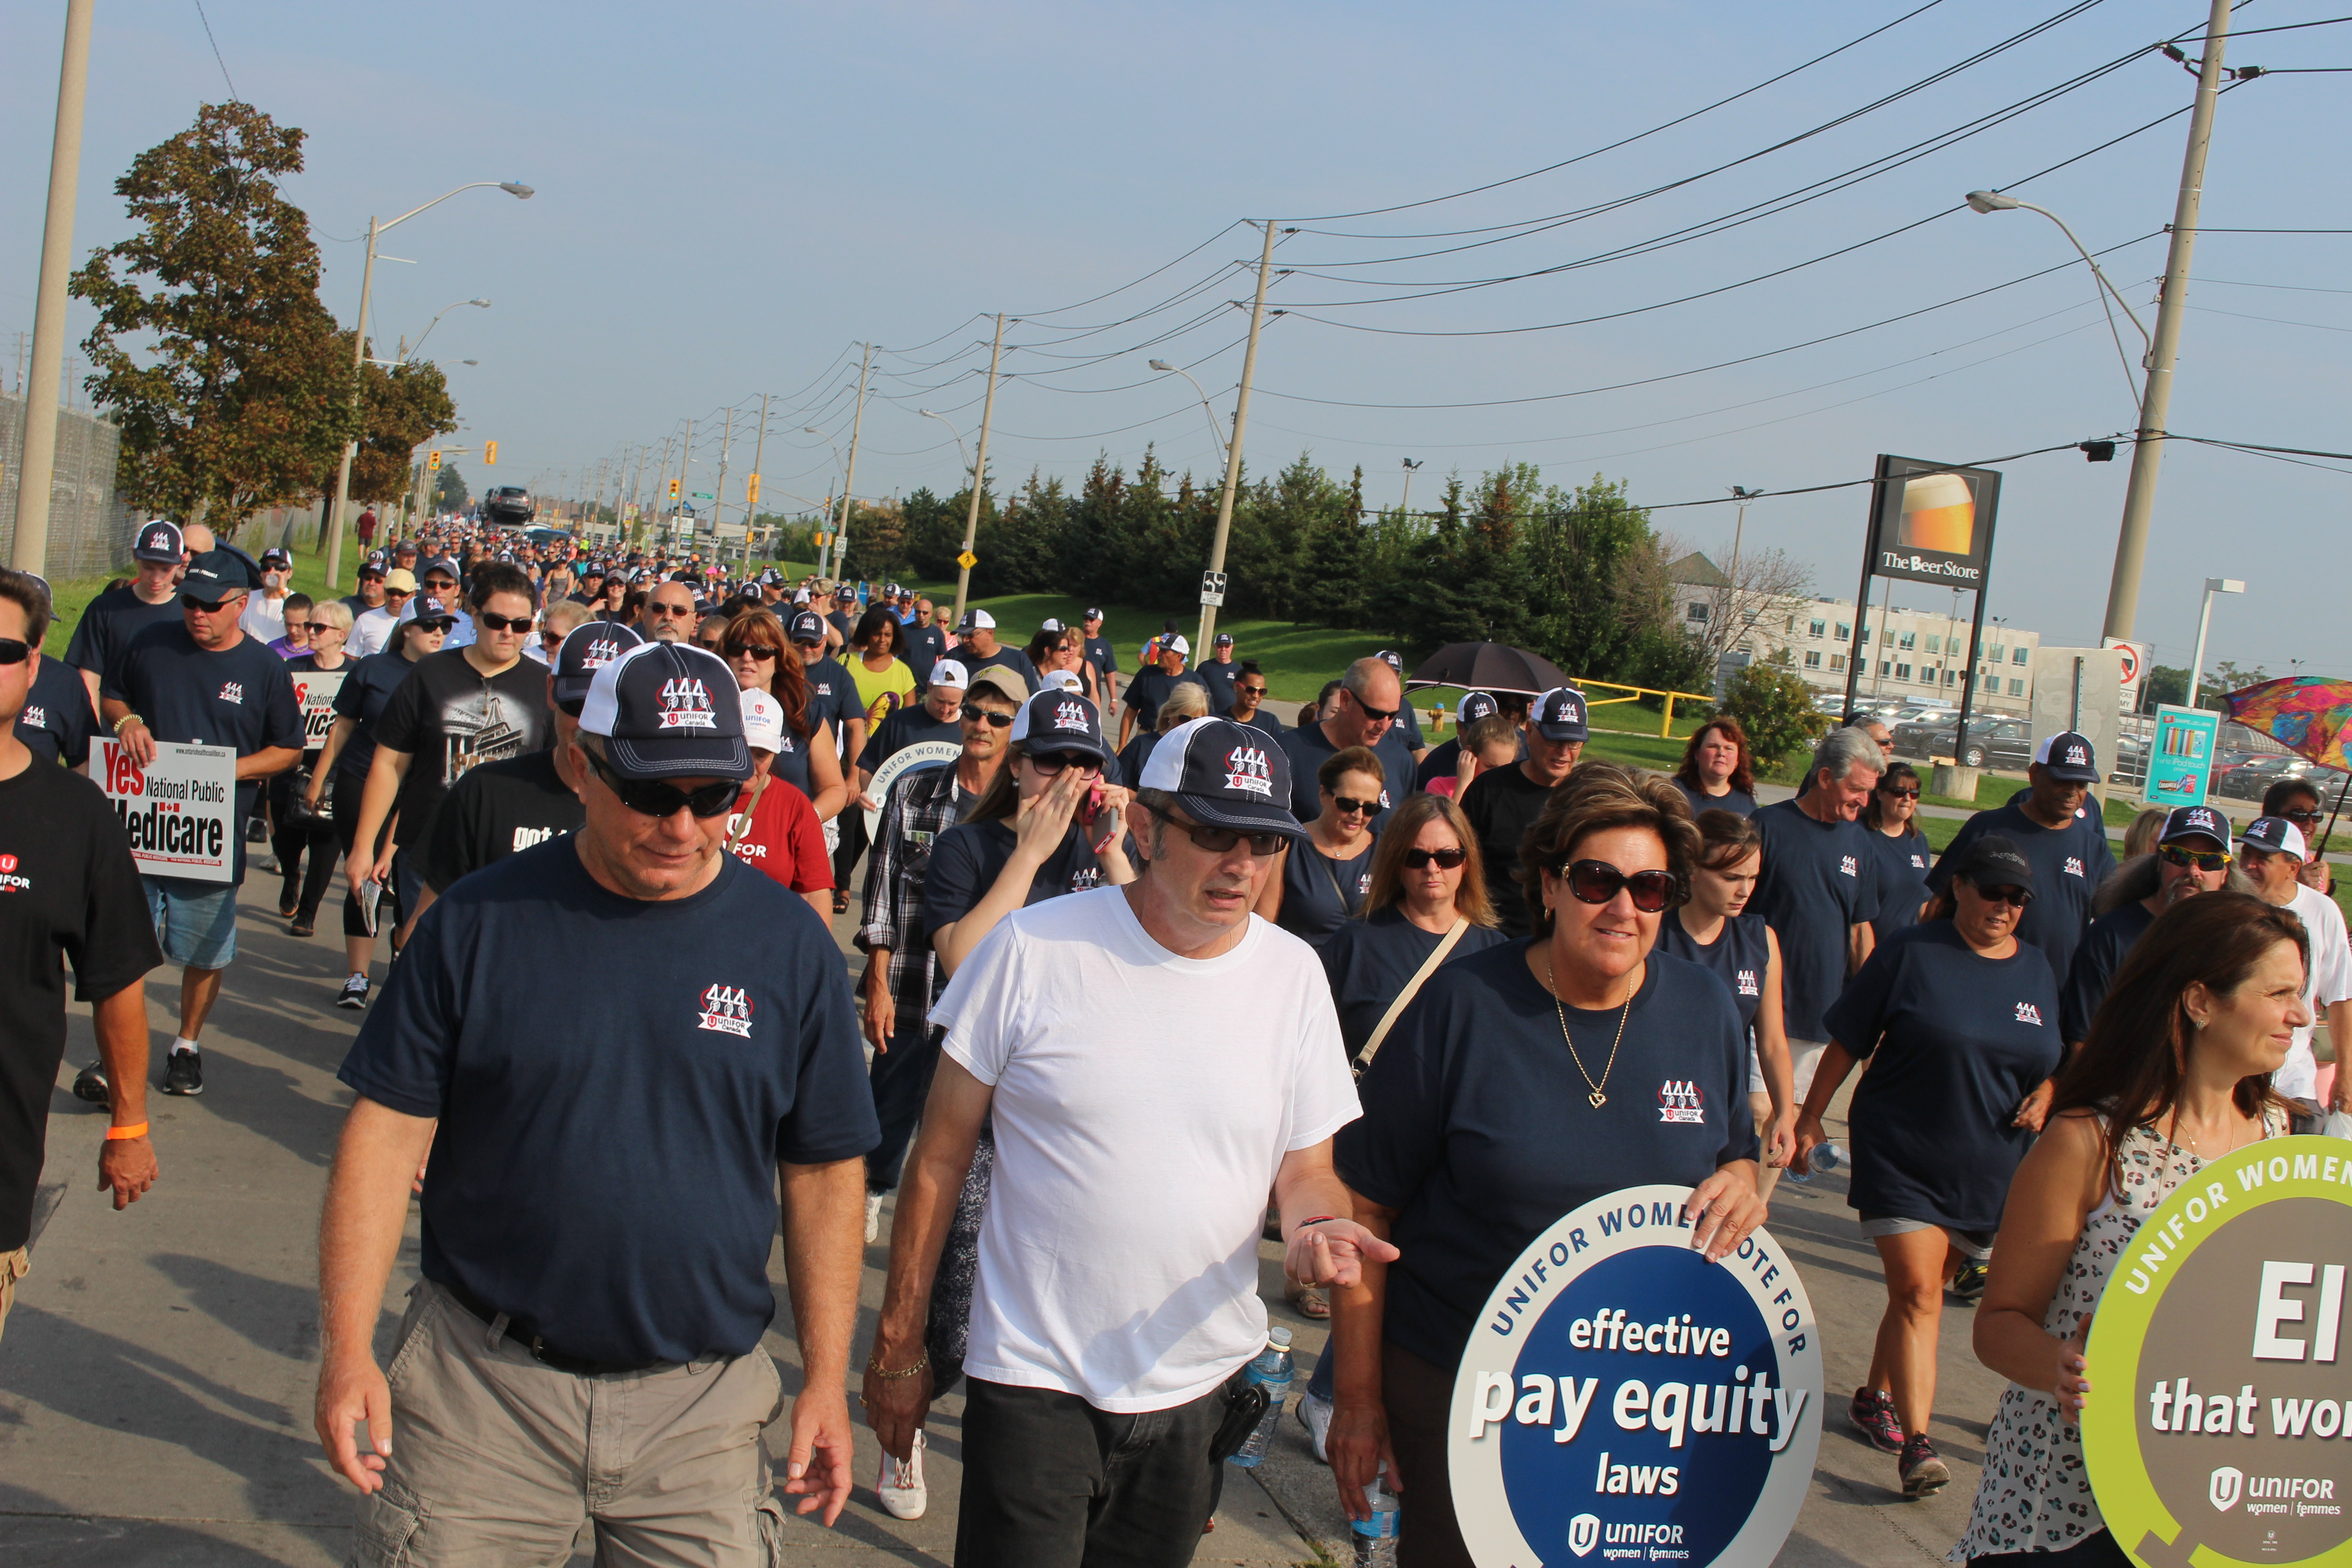 The 2015 Labour Day Parade in Windsor. (Photo by Adelle Loiselle)